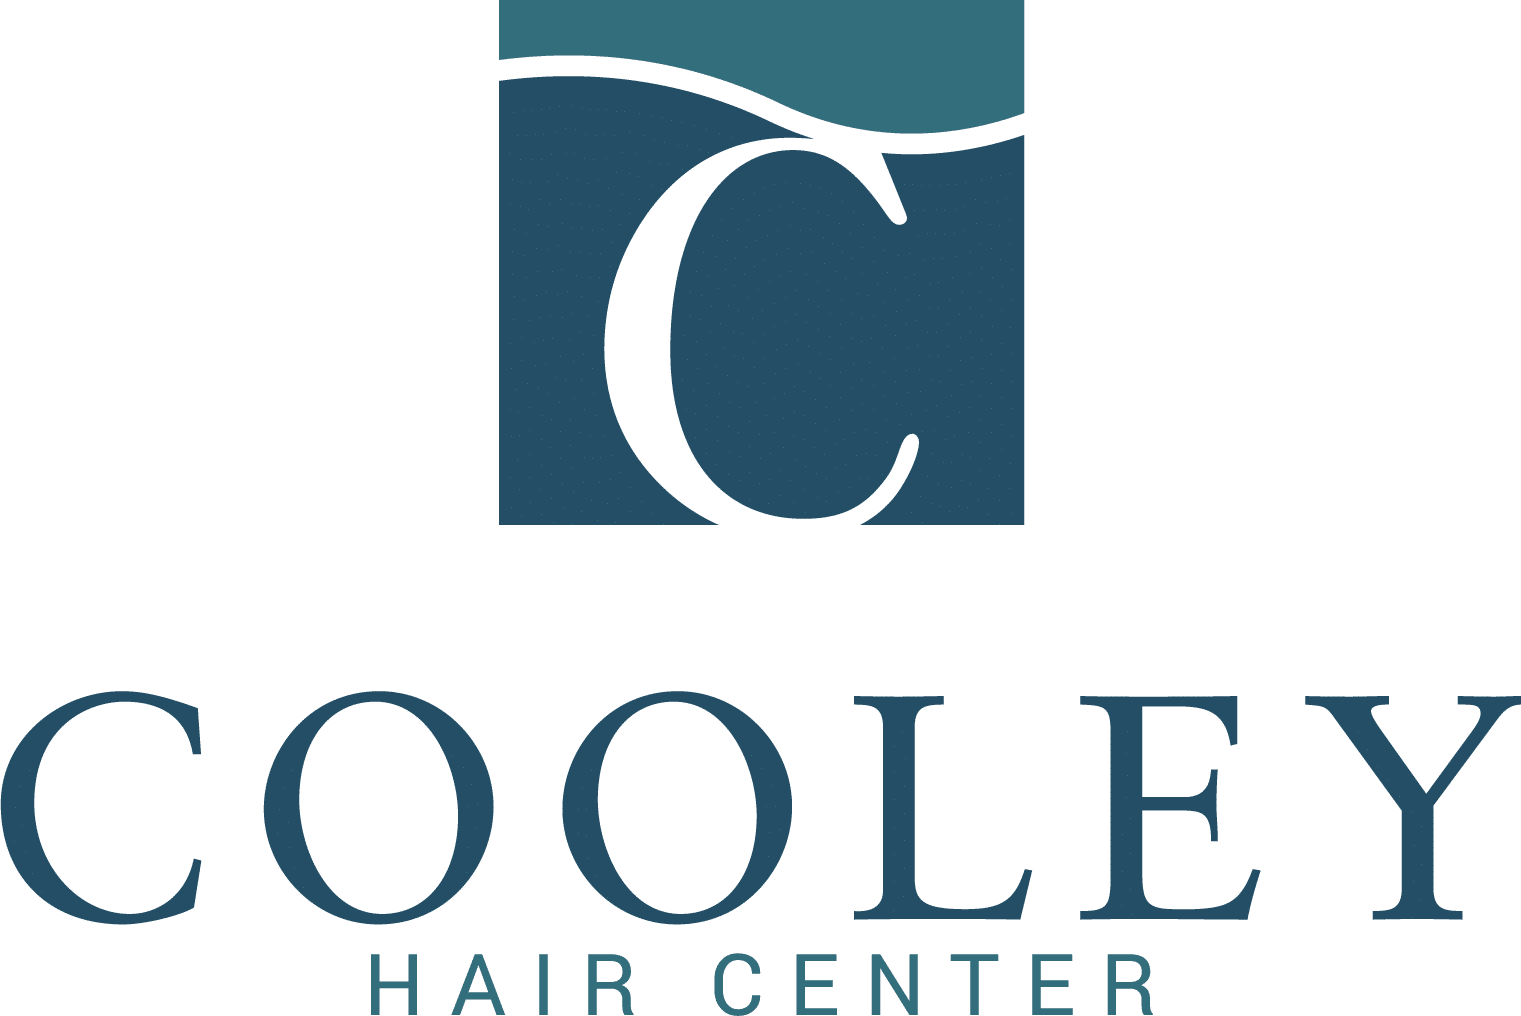 Cooley Hair Center